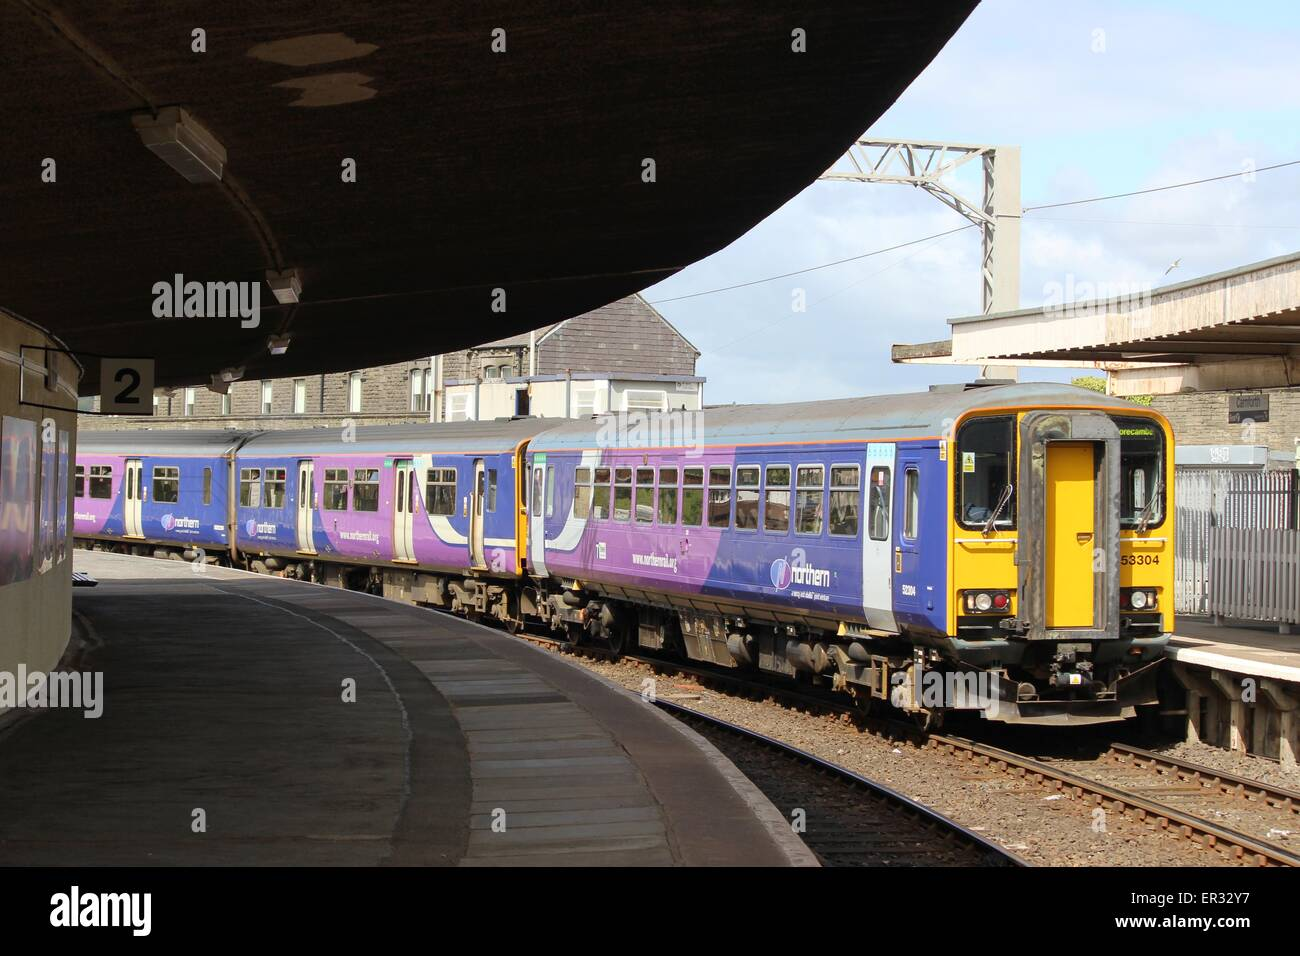 Class153 and 150 diesel units arriving at Carnforth railway station, platform 1, with a train to Morecambe. - Stock Image